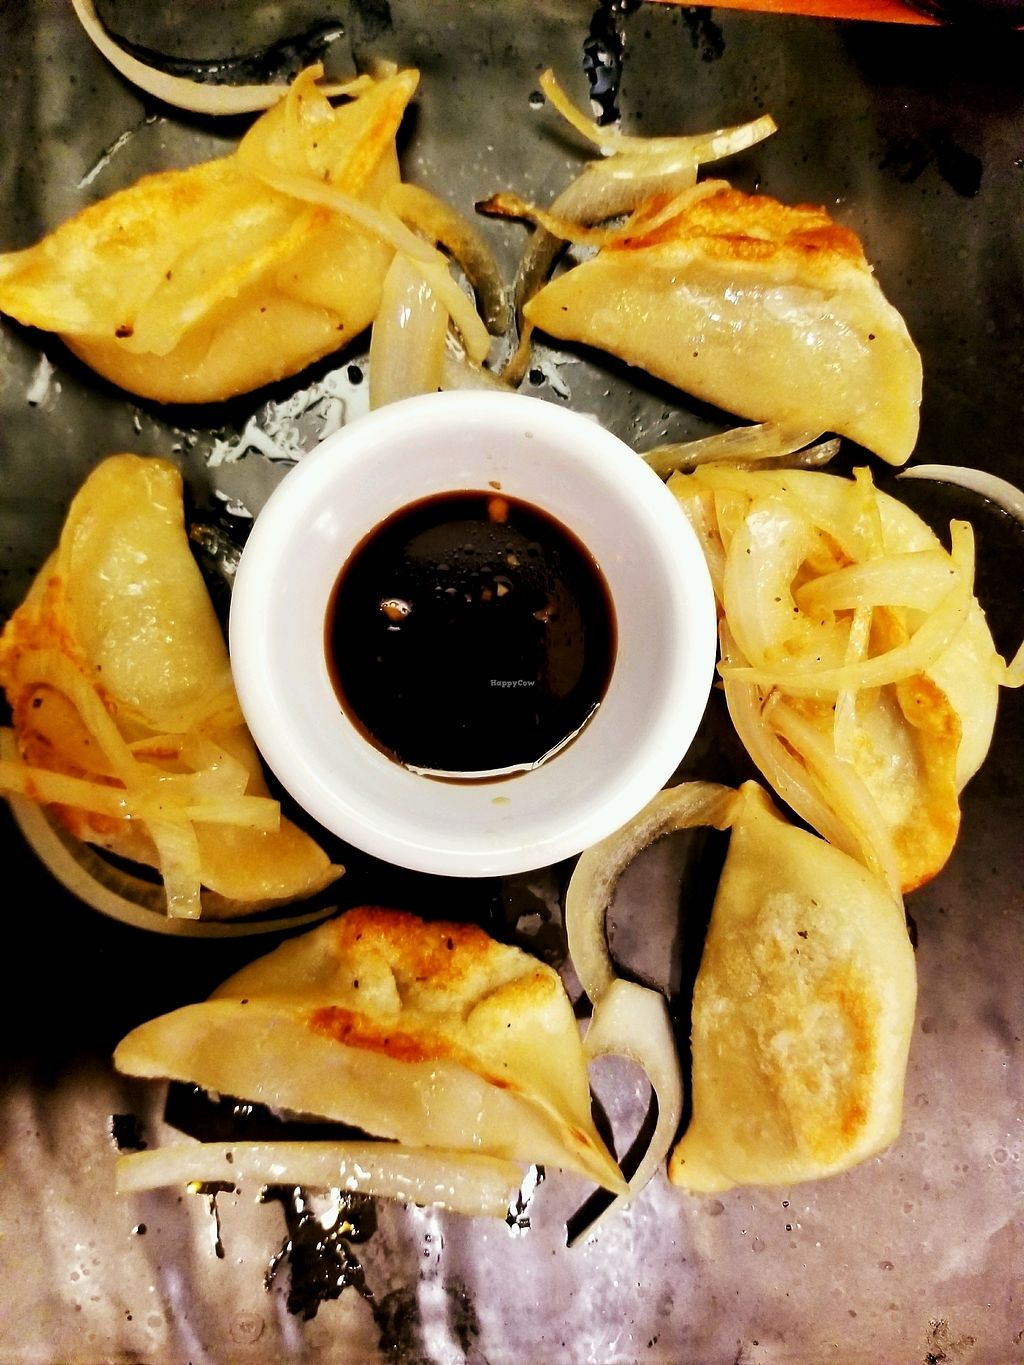 """Photo of House of Leaf & Bean  by <a href=""""/members/profile/pistol11"""">pistol11</a> <br/>Vegan Dumplings...so good <br/> January 14, 2018  - <a href='/contact/abuse/image/108032/346341'>Report</a>"""